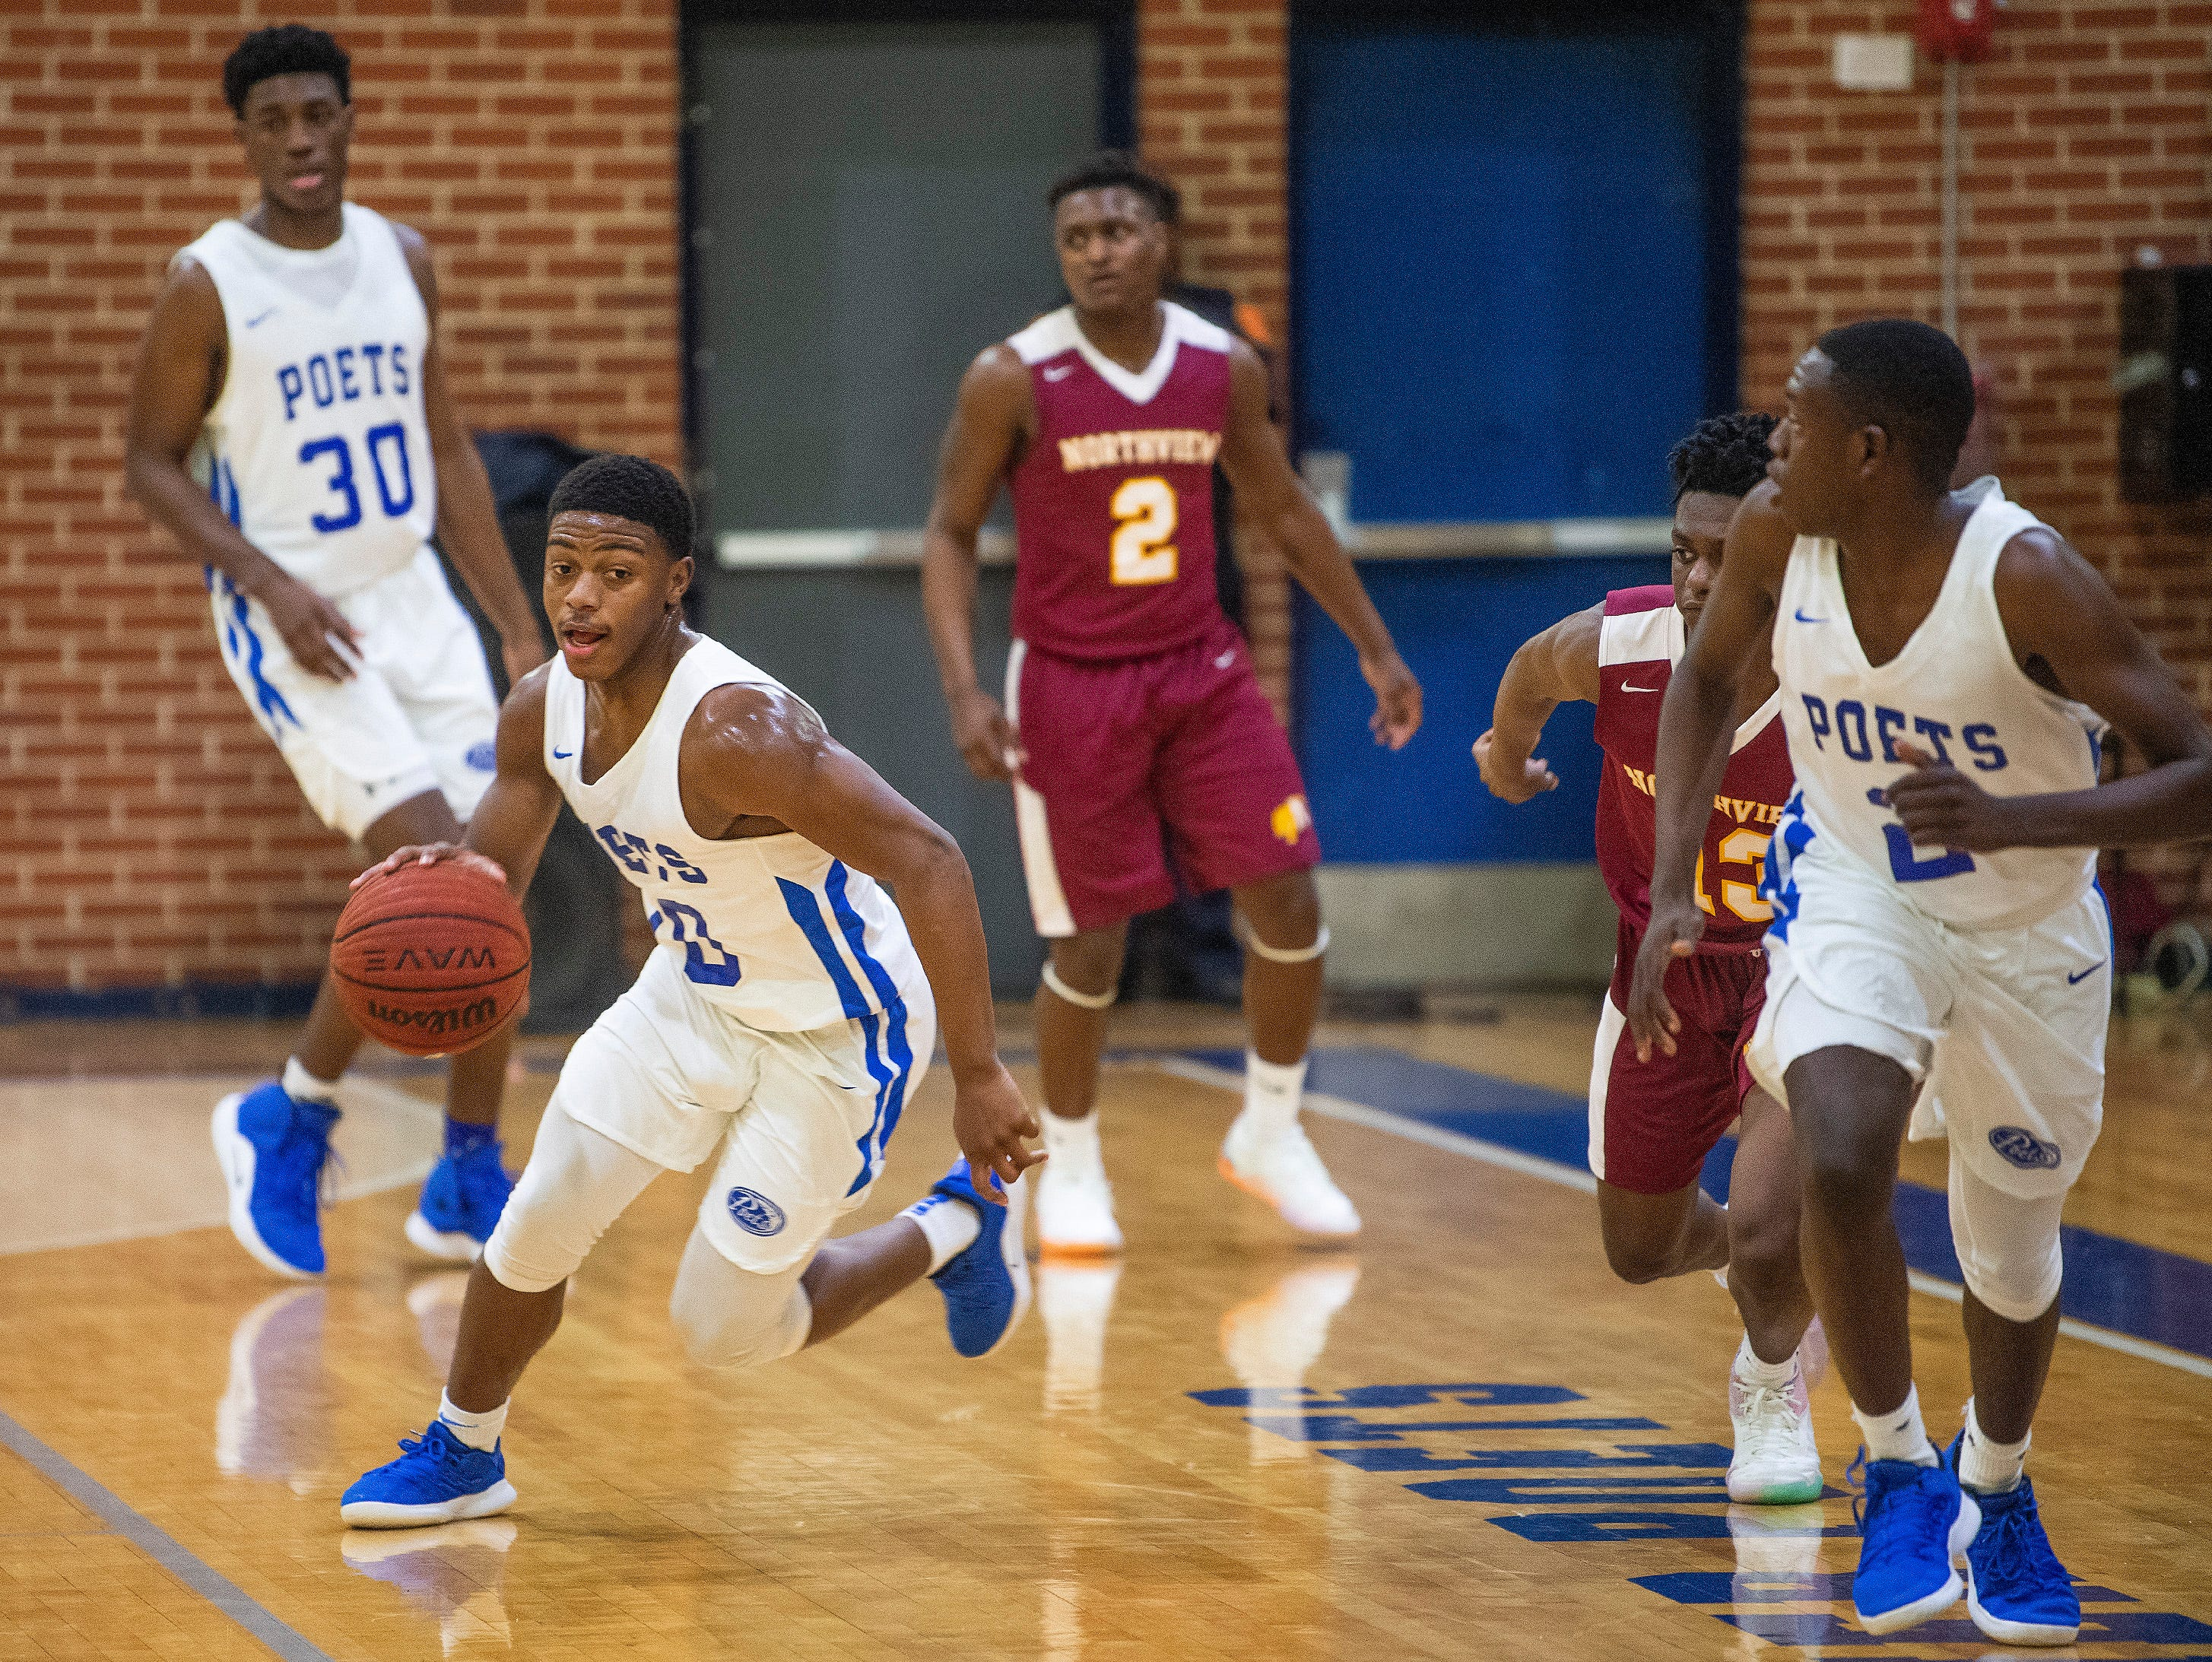 Lanier's Amani Johnson (10) steals the ball against Northview at the Lanier campus in Montgomery, Ala., on Tuesday February 12, 2019.